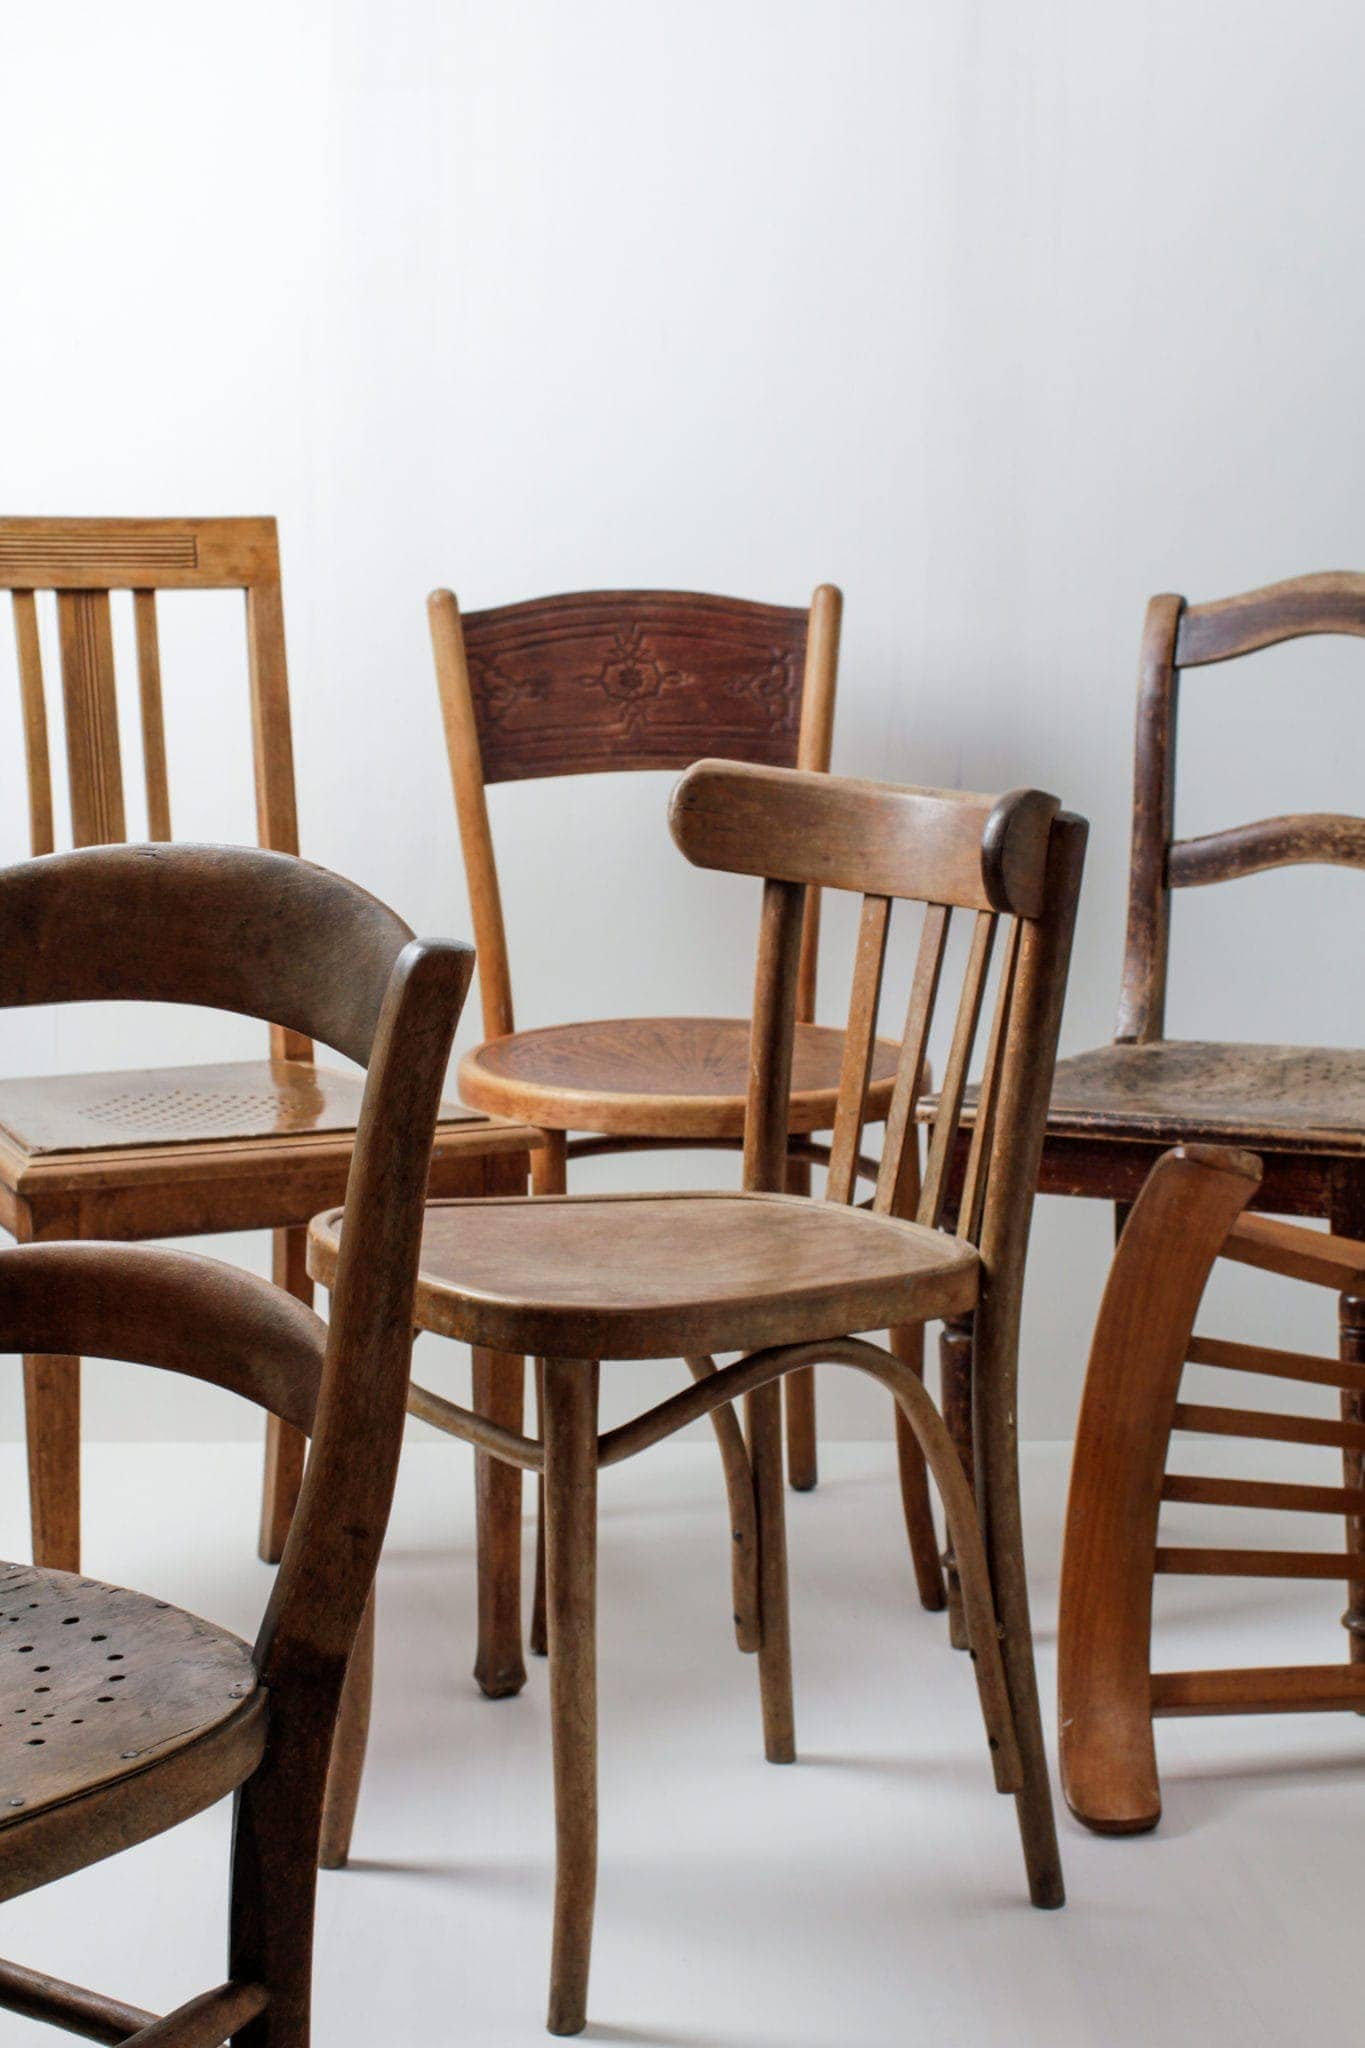 Miraculous Wooden Dining Chairs Carlos Vintage Brown Mismatching Caraccident5 Cool Chair Designs And Ideas Caraccident5Info